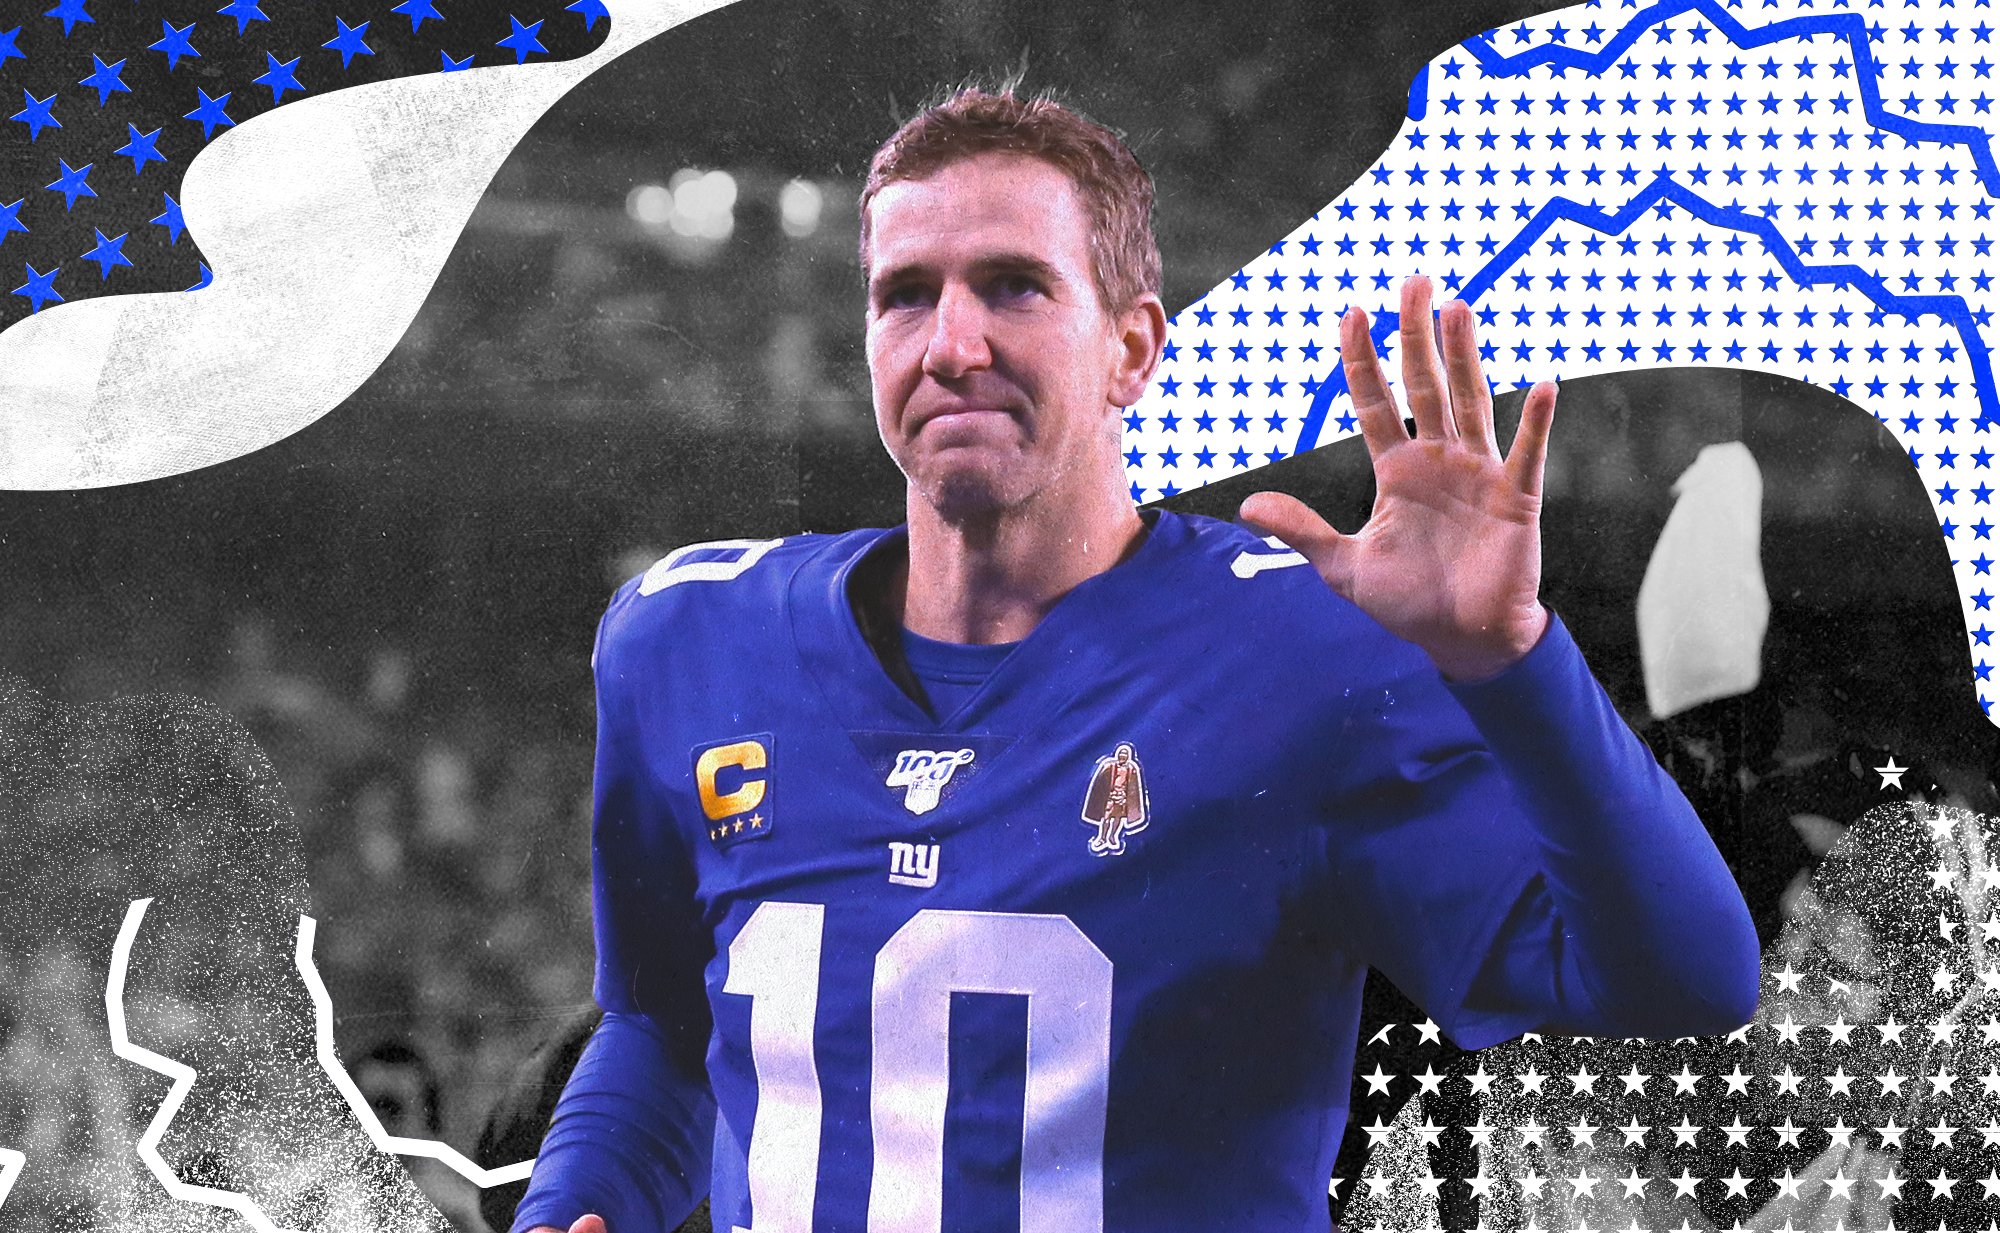 Eli Manning will absolutely get into the Hall of Fame one day